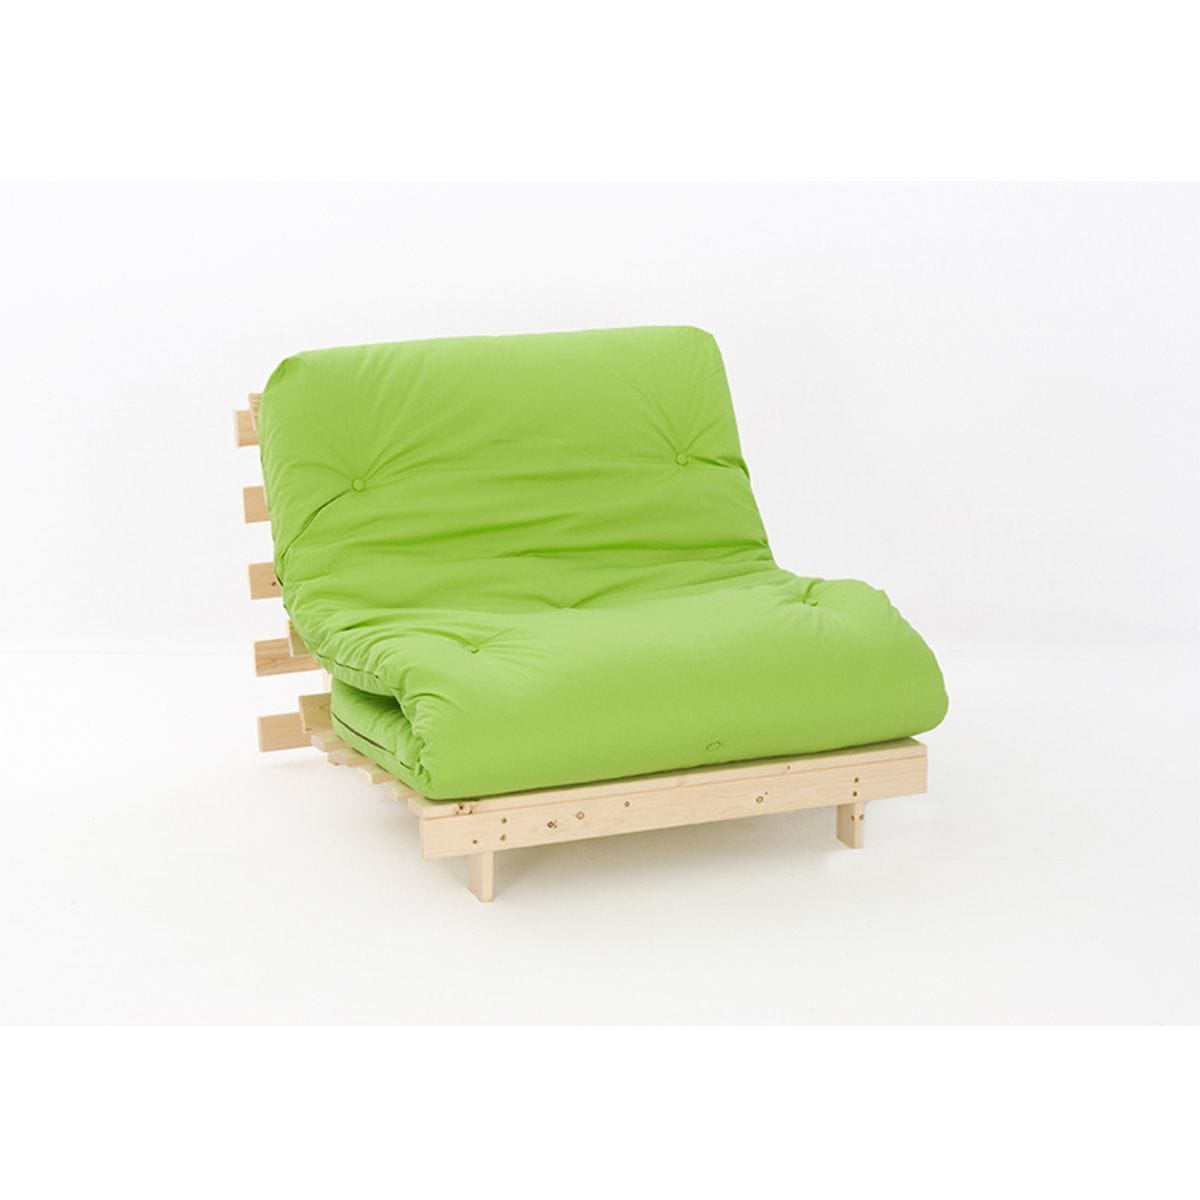 Ary Sofa Bed WithTufted Mattress - Lime